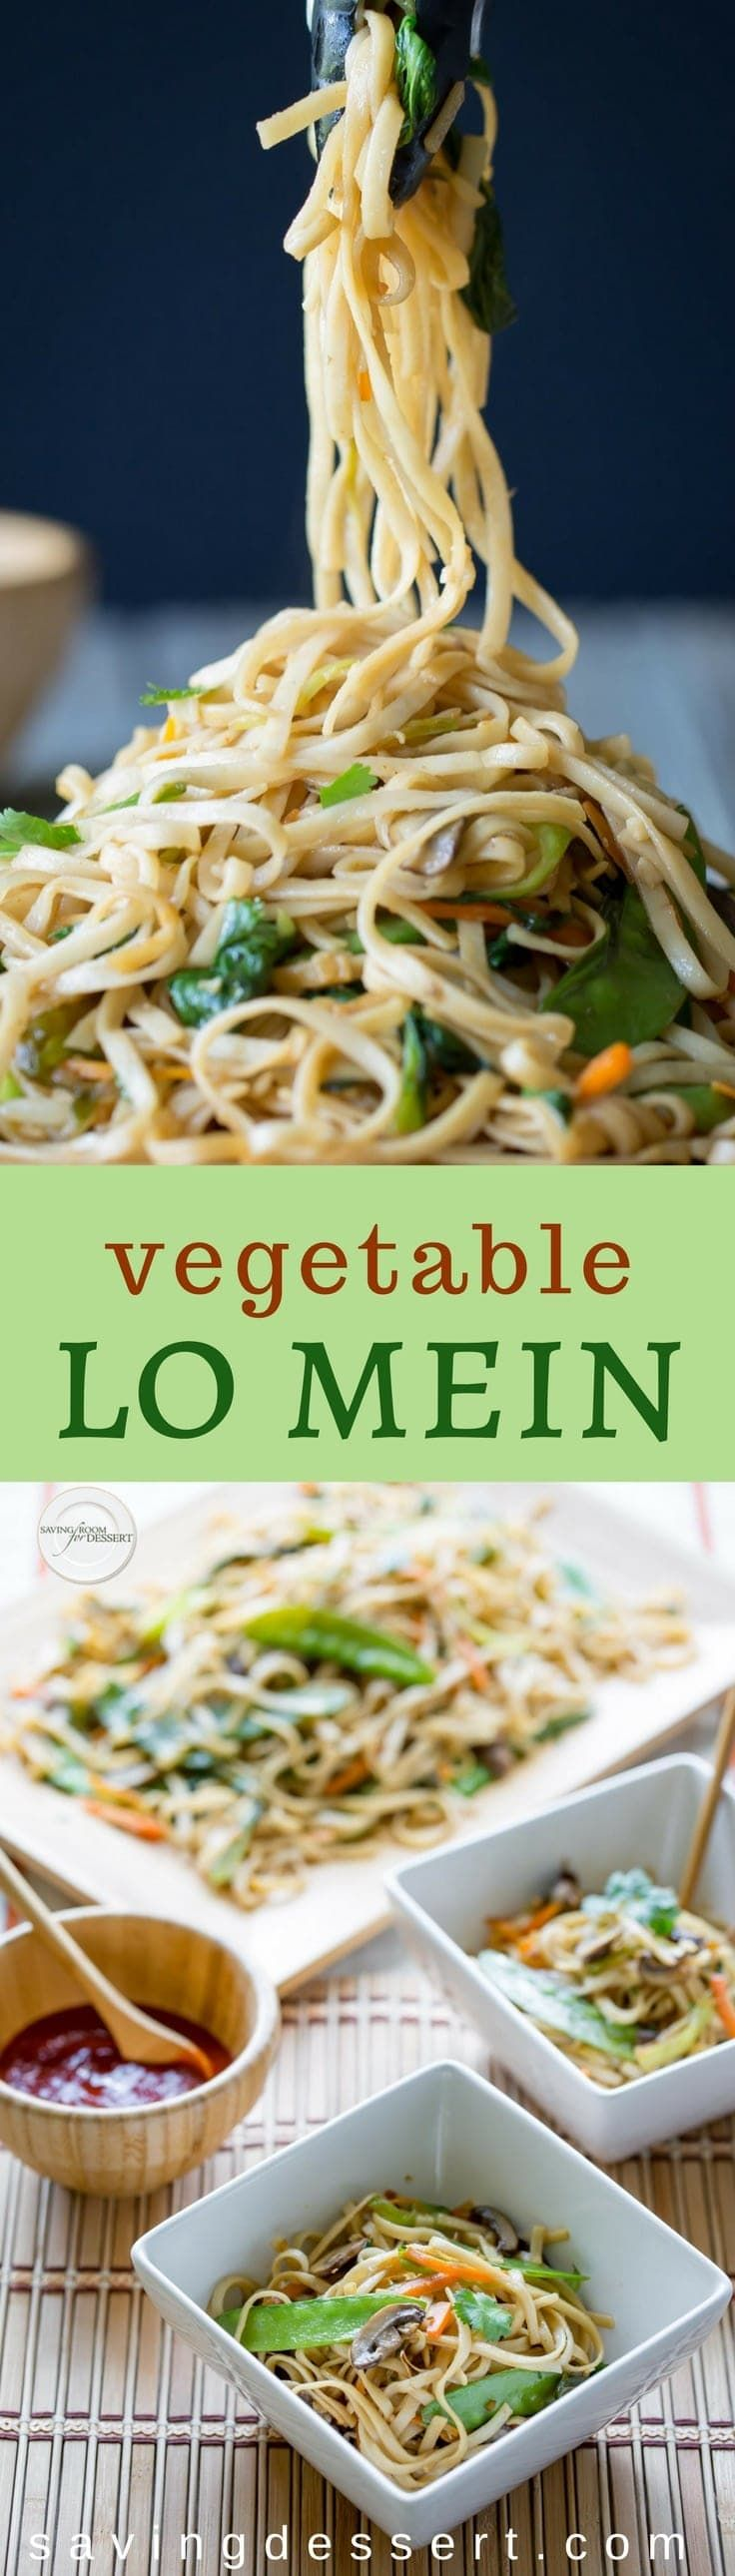 A light and flavorful Vegetable Lo Mein perfect for a Meatless Monday meal, and it's so much better than take-out! Easily adaptable for your favorite vegetables or whatever you have on hand. #savingroomfordessert #asian #lomein #vegetablelomein #meatlessmonday #vegetarian #vegelomein